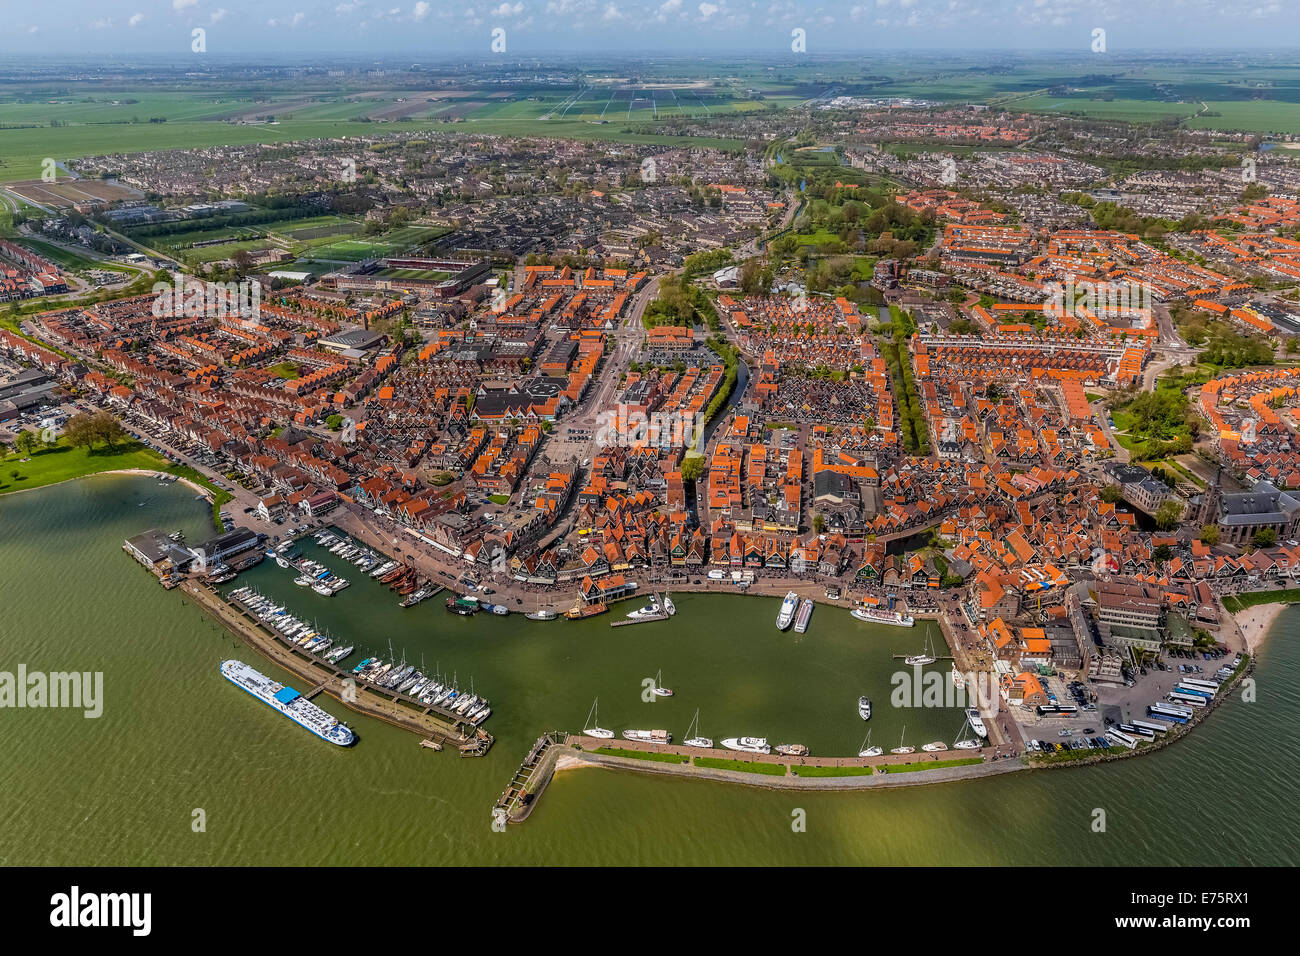 Aerial view, Volendam with harbour at Markermeer lake, Volendam, Province of North Holland, Netherlands Stock Photo